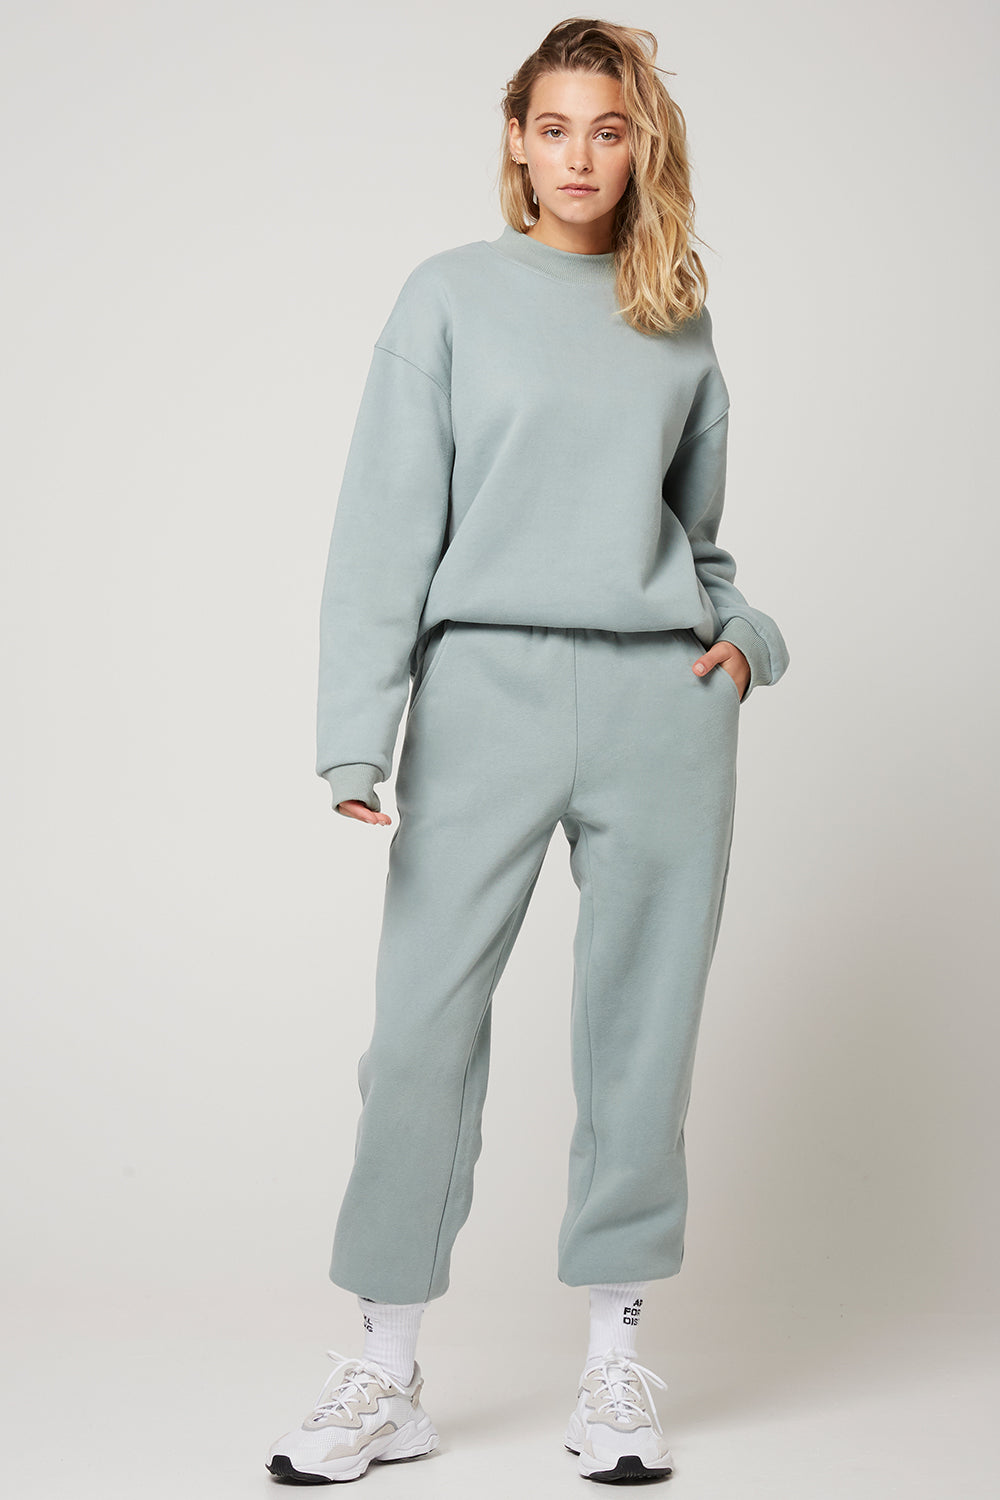 Atoir X RR / The Track Pant / Teal